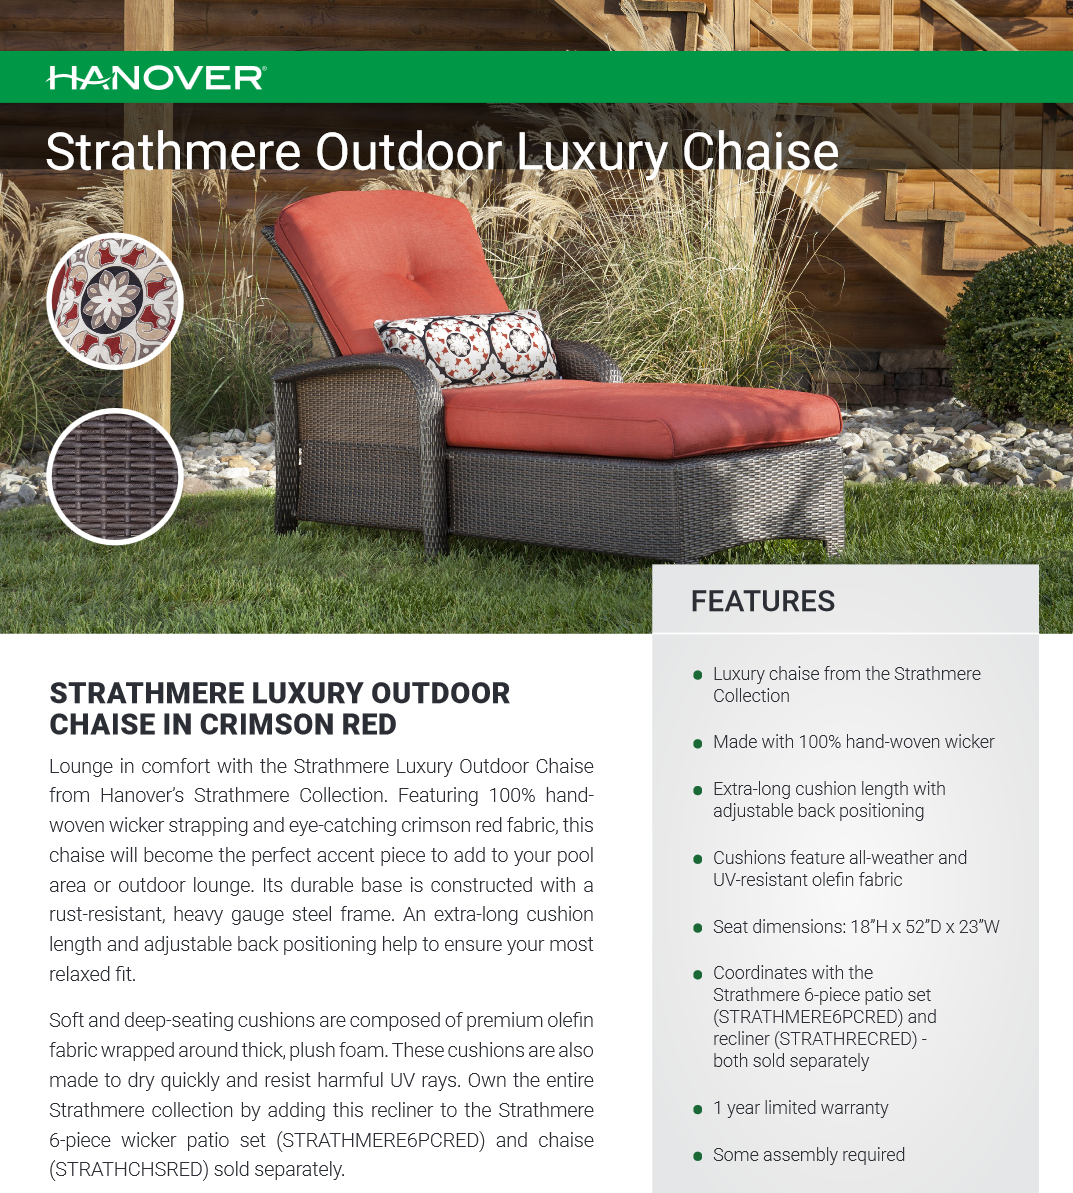 chaise2 Outdoor furniture sets, Outdoor chaise, Outdoor